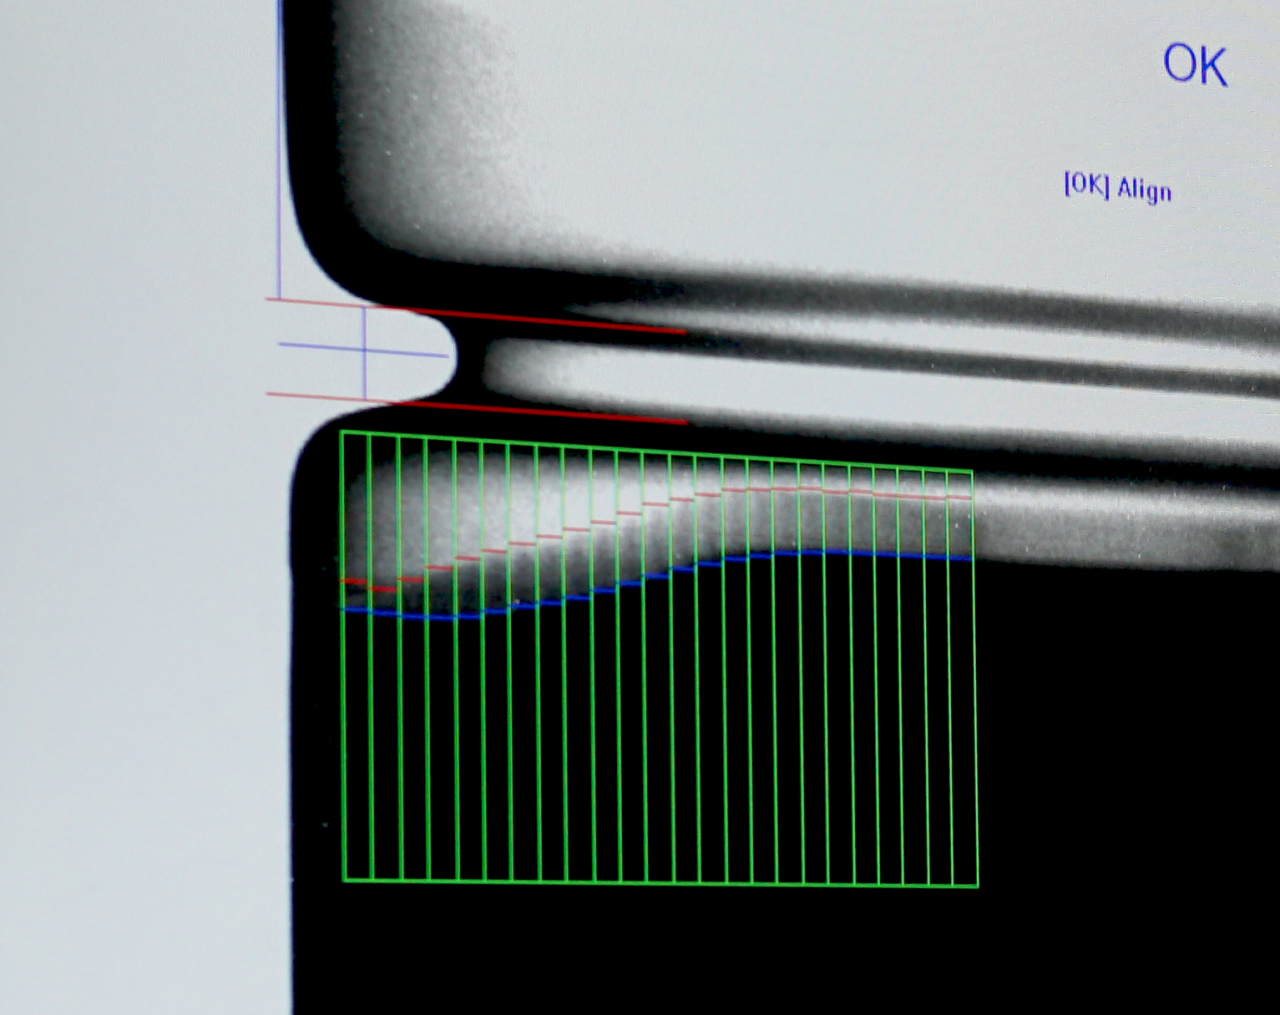 Innometry's X-ray analysis shows misalignment inside a battery. (Innometry)